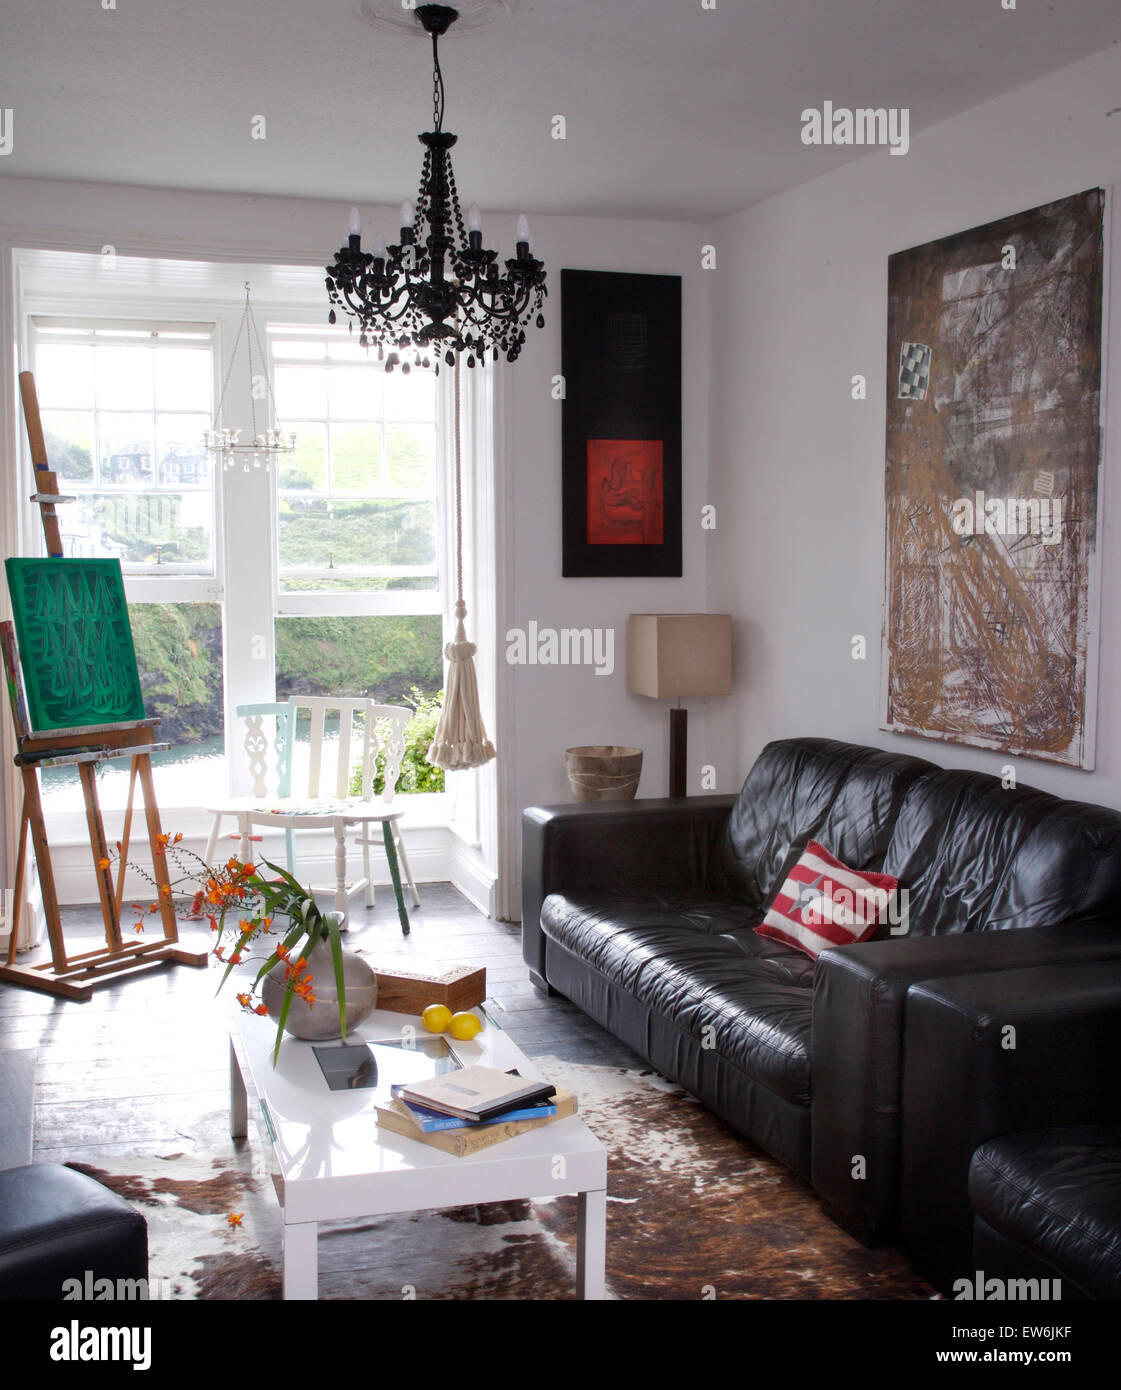 Black leather sofa in artists coastal living room with an easel beside open windows with a view of the sea